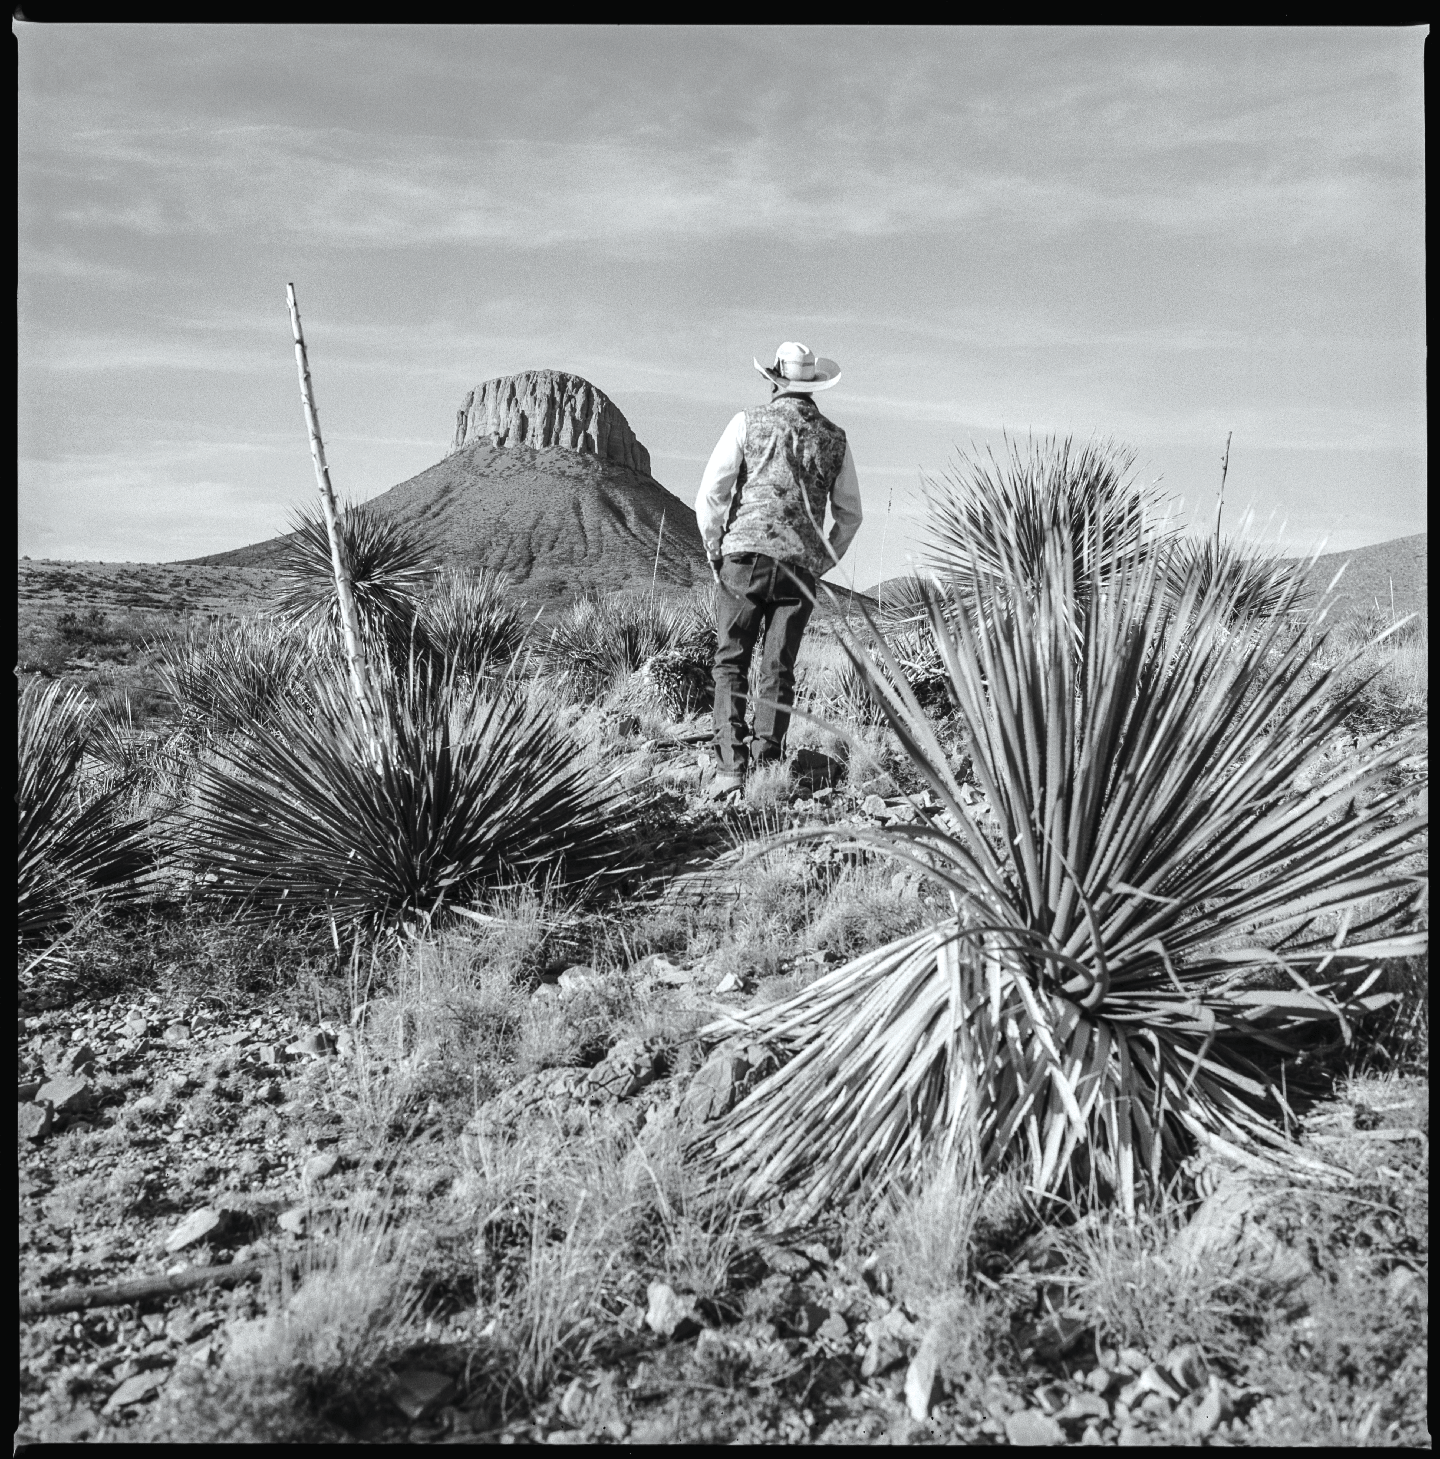 Man surveying land Hudspeth County, 2017   Made with Hasselblad 501c with Kodak Tri-X 400 b&w film